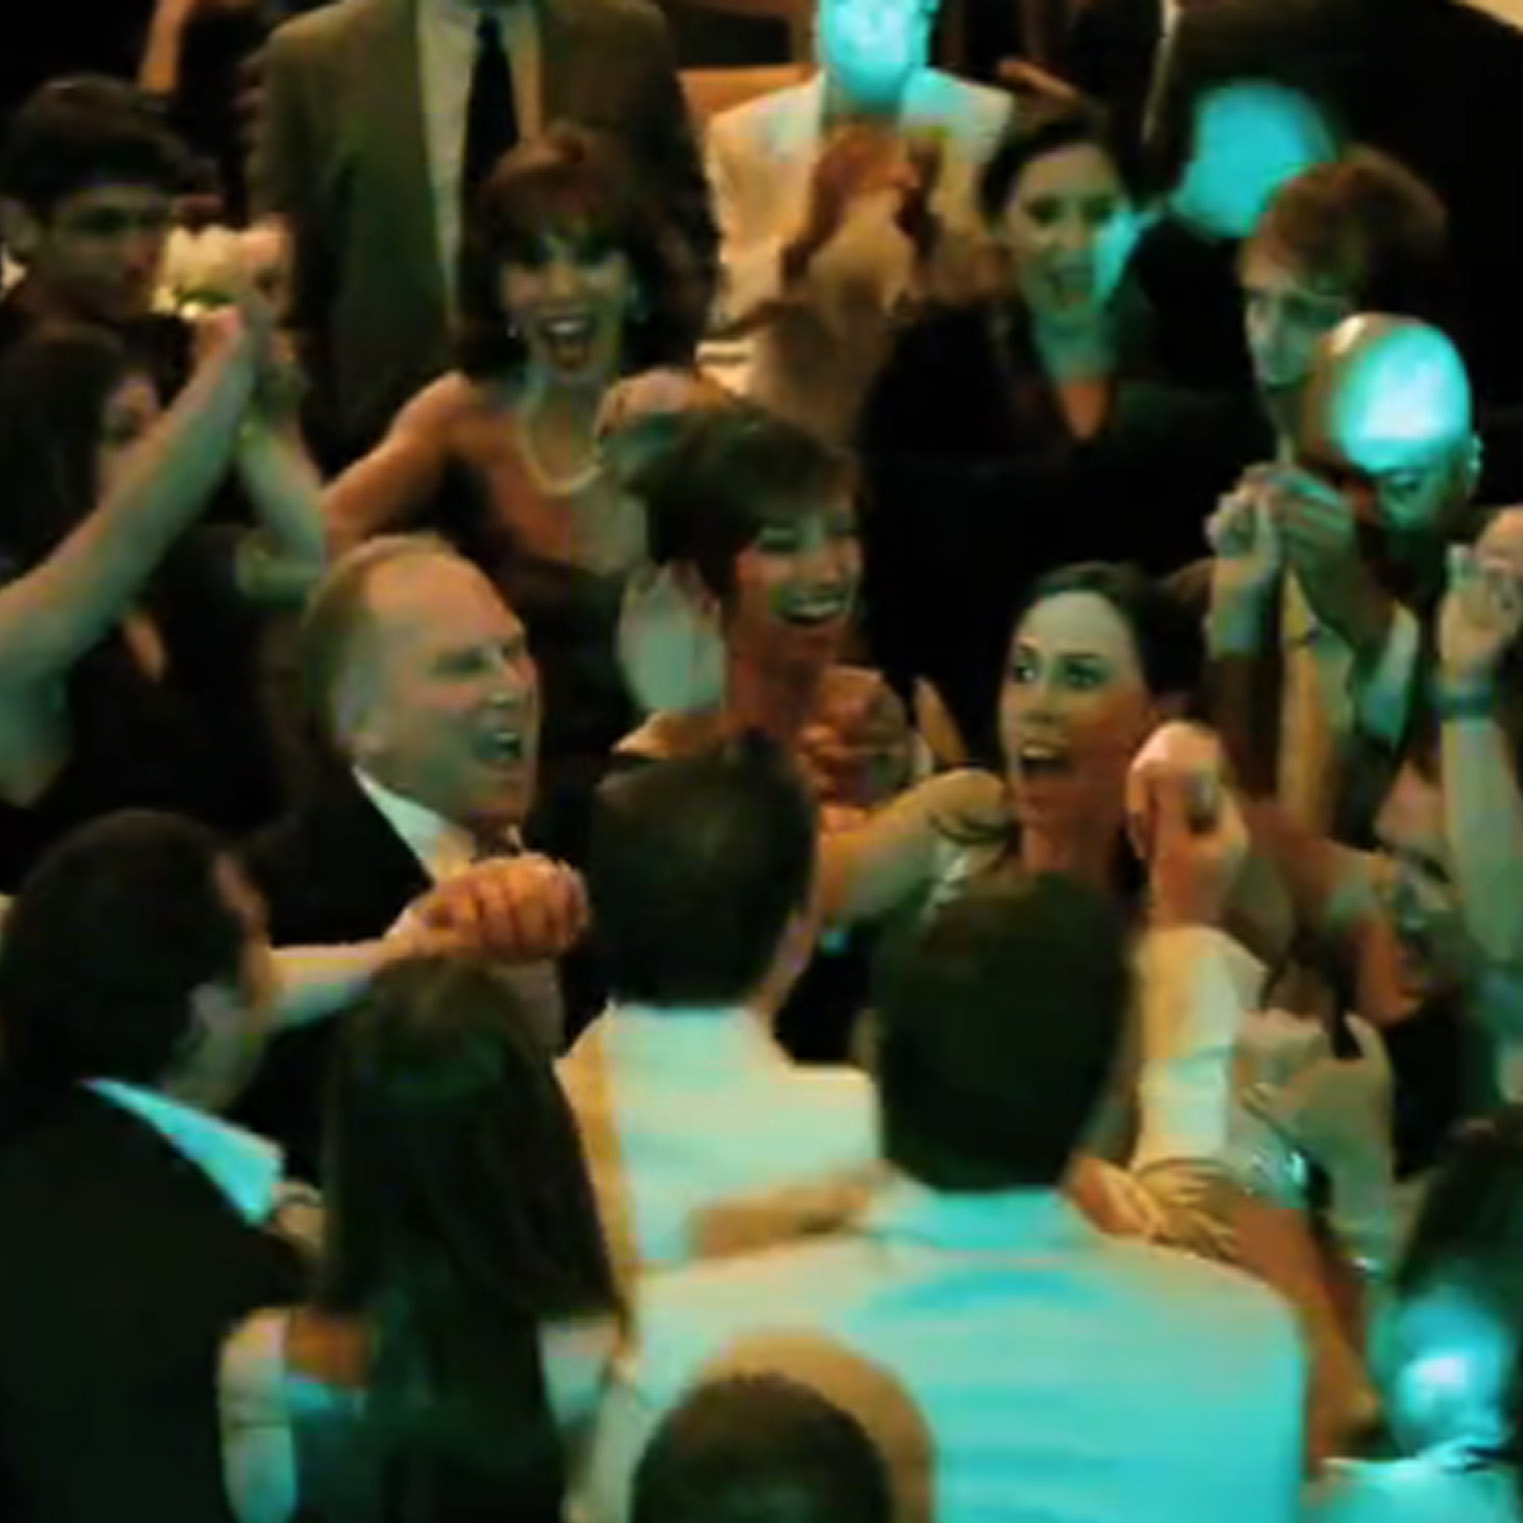 """Hava Nagila"" scores a raucous wedding hora in Roberta Grossman's Hava Nagila (The Movie). The film traces the evolution of the tune from folk song to party favorite."